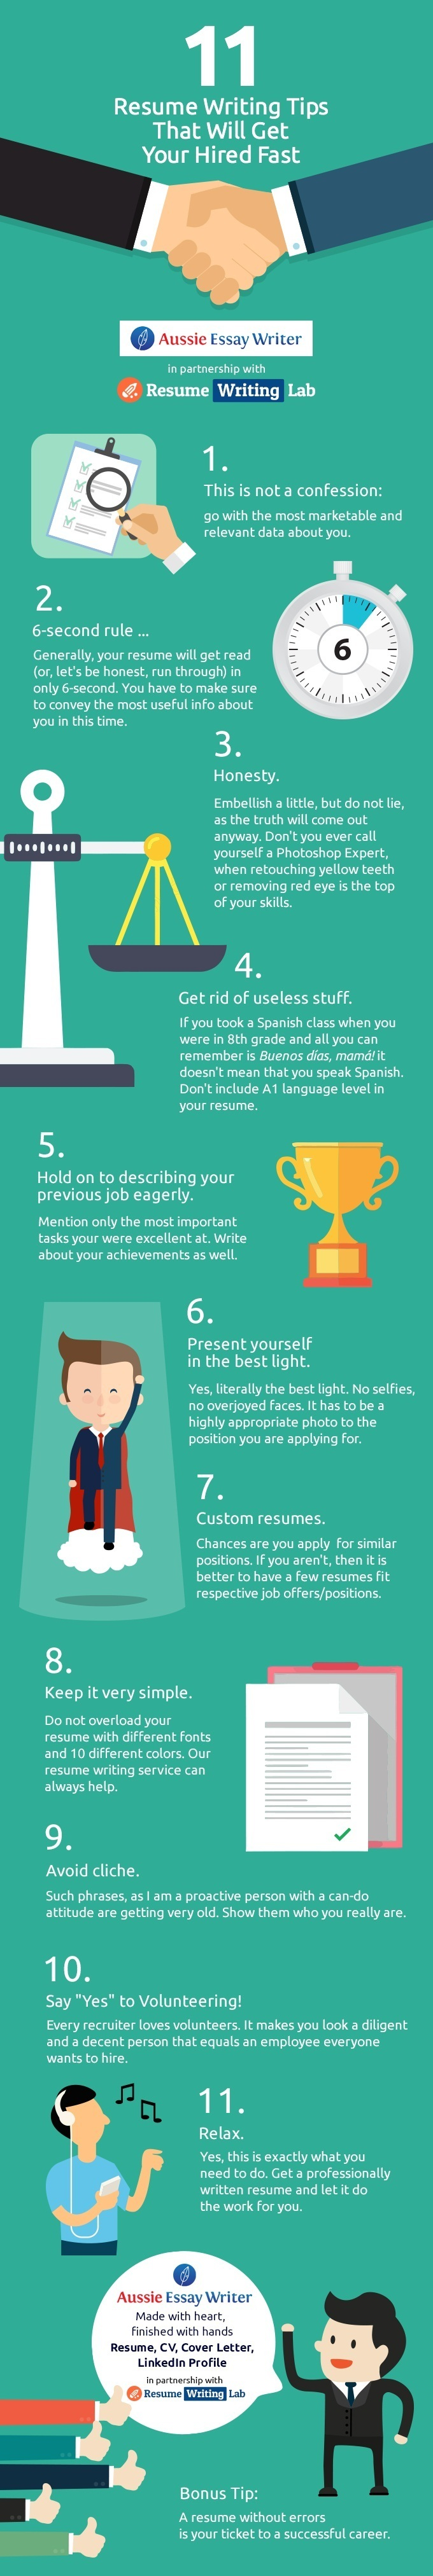 11 Resume Writing Tips That Will Get You Hired Fast Infographic e